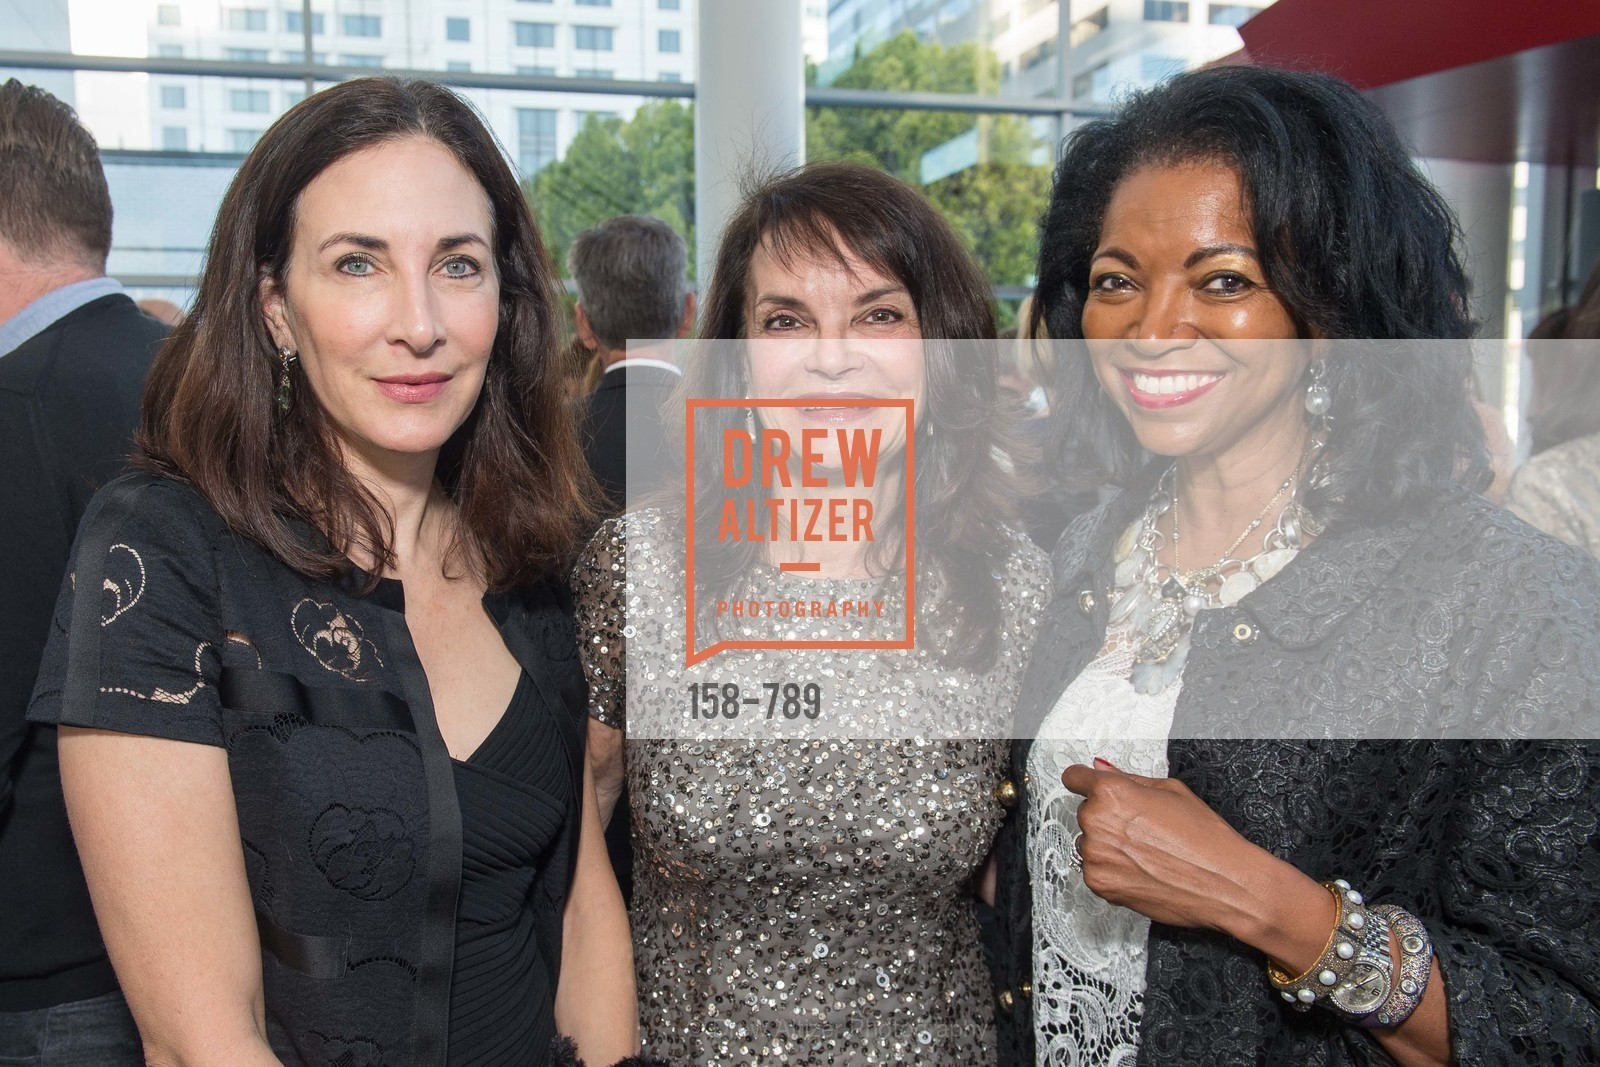 Stefanie Coyote, Janette Gitler, Denise Bradley-Tyson, ALONZO KING LINE'S Ballet Spring Gala 2015, US, April 12th, 2015,Drew Altizer, Drew Altizer Photography, full-service agency, private events, San Francisco photographer, photographer california